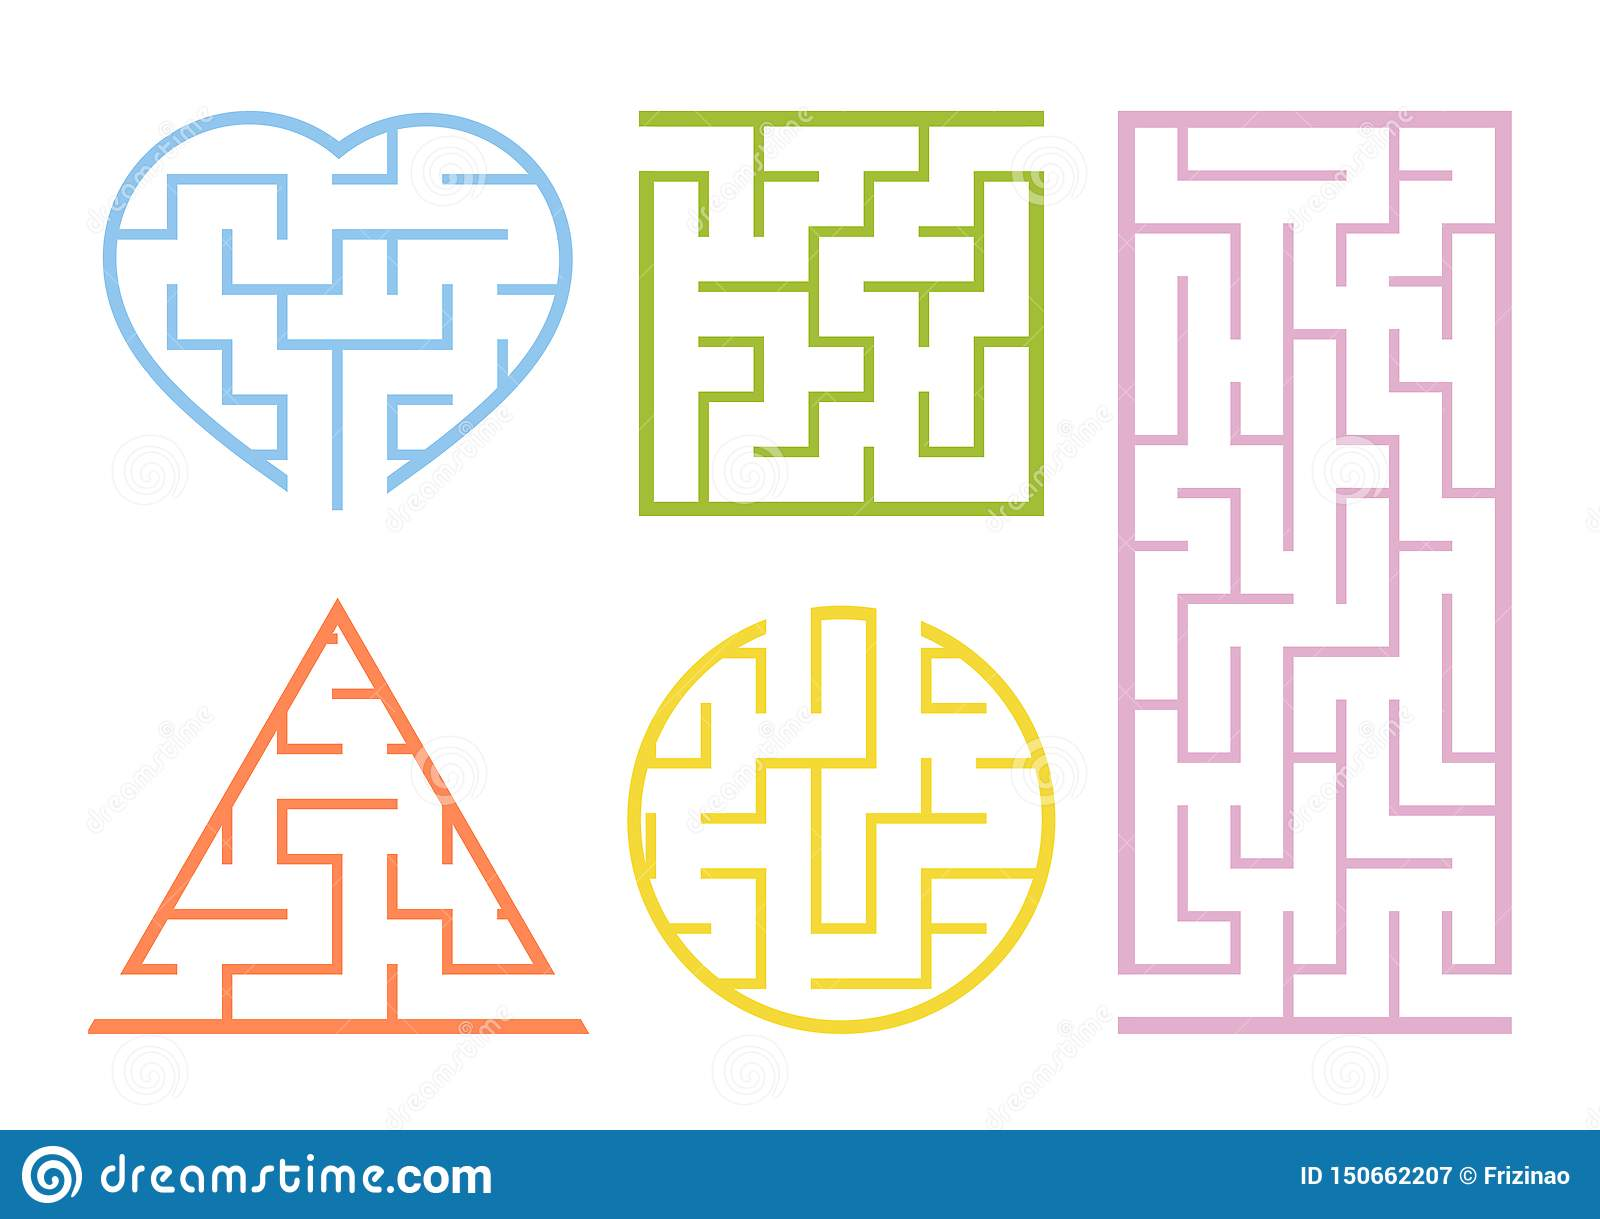 A Set Of Mazes Game For Kids Puzzle For Children